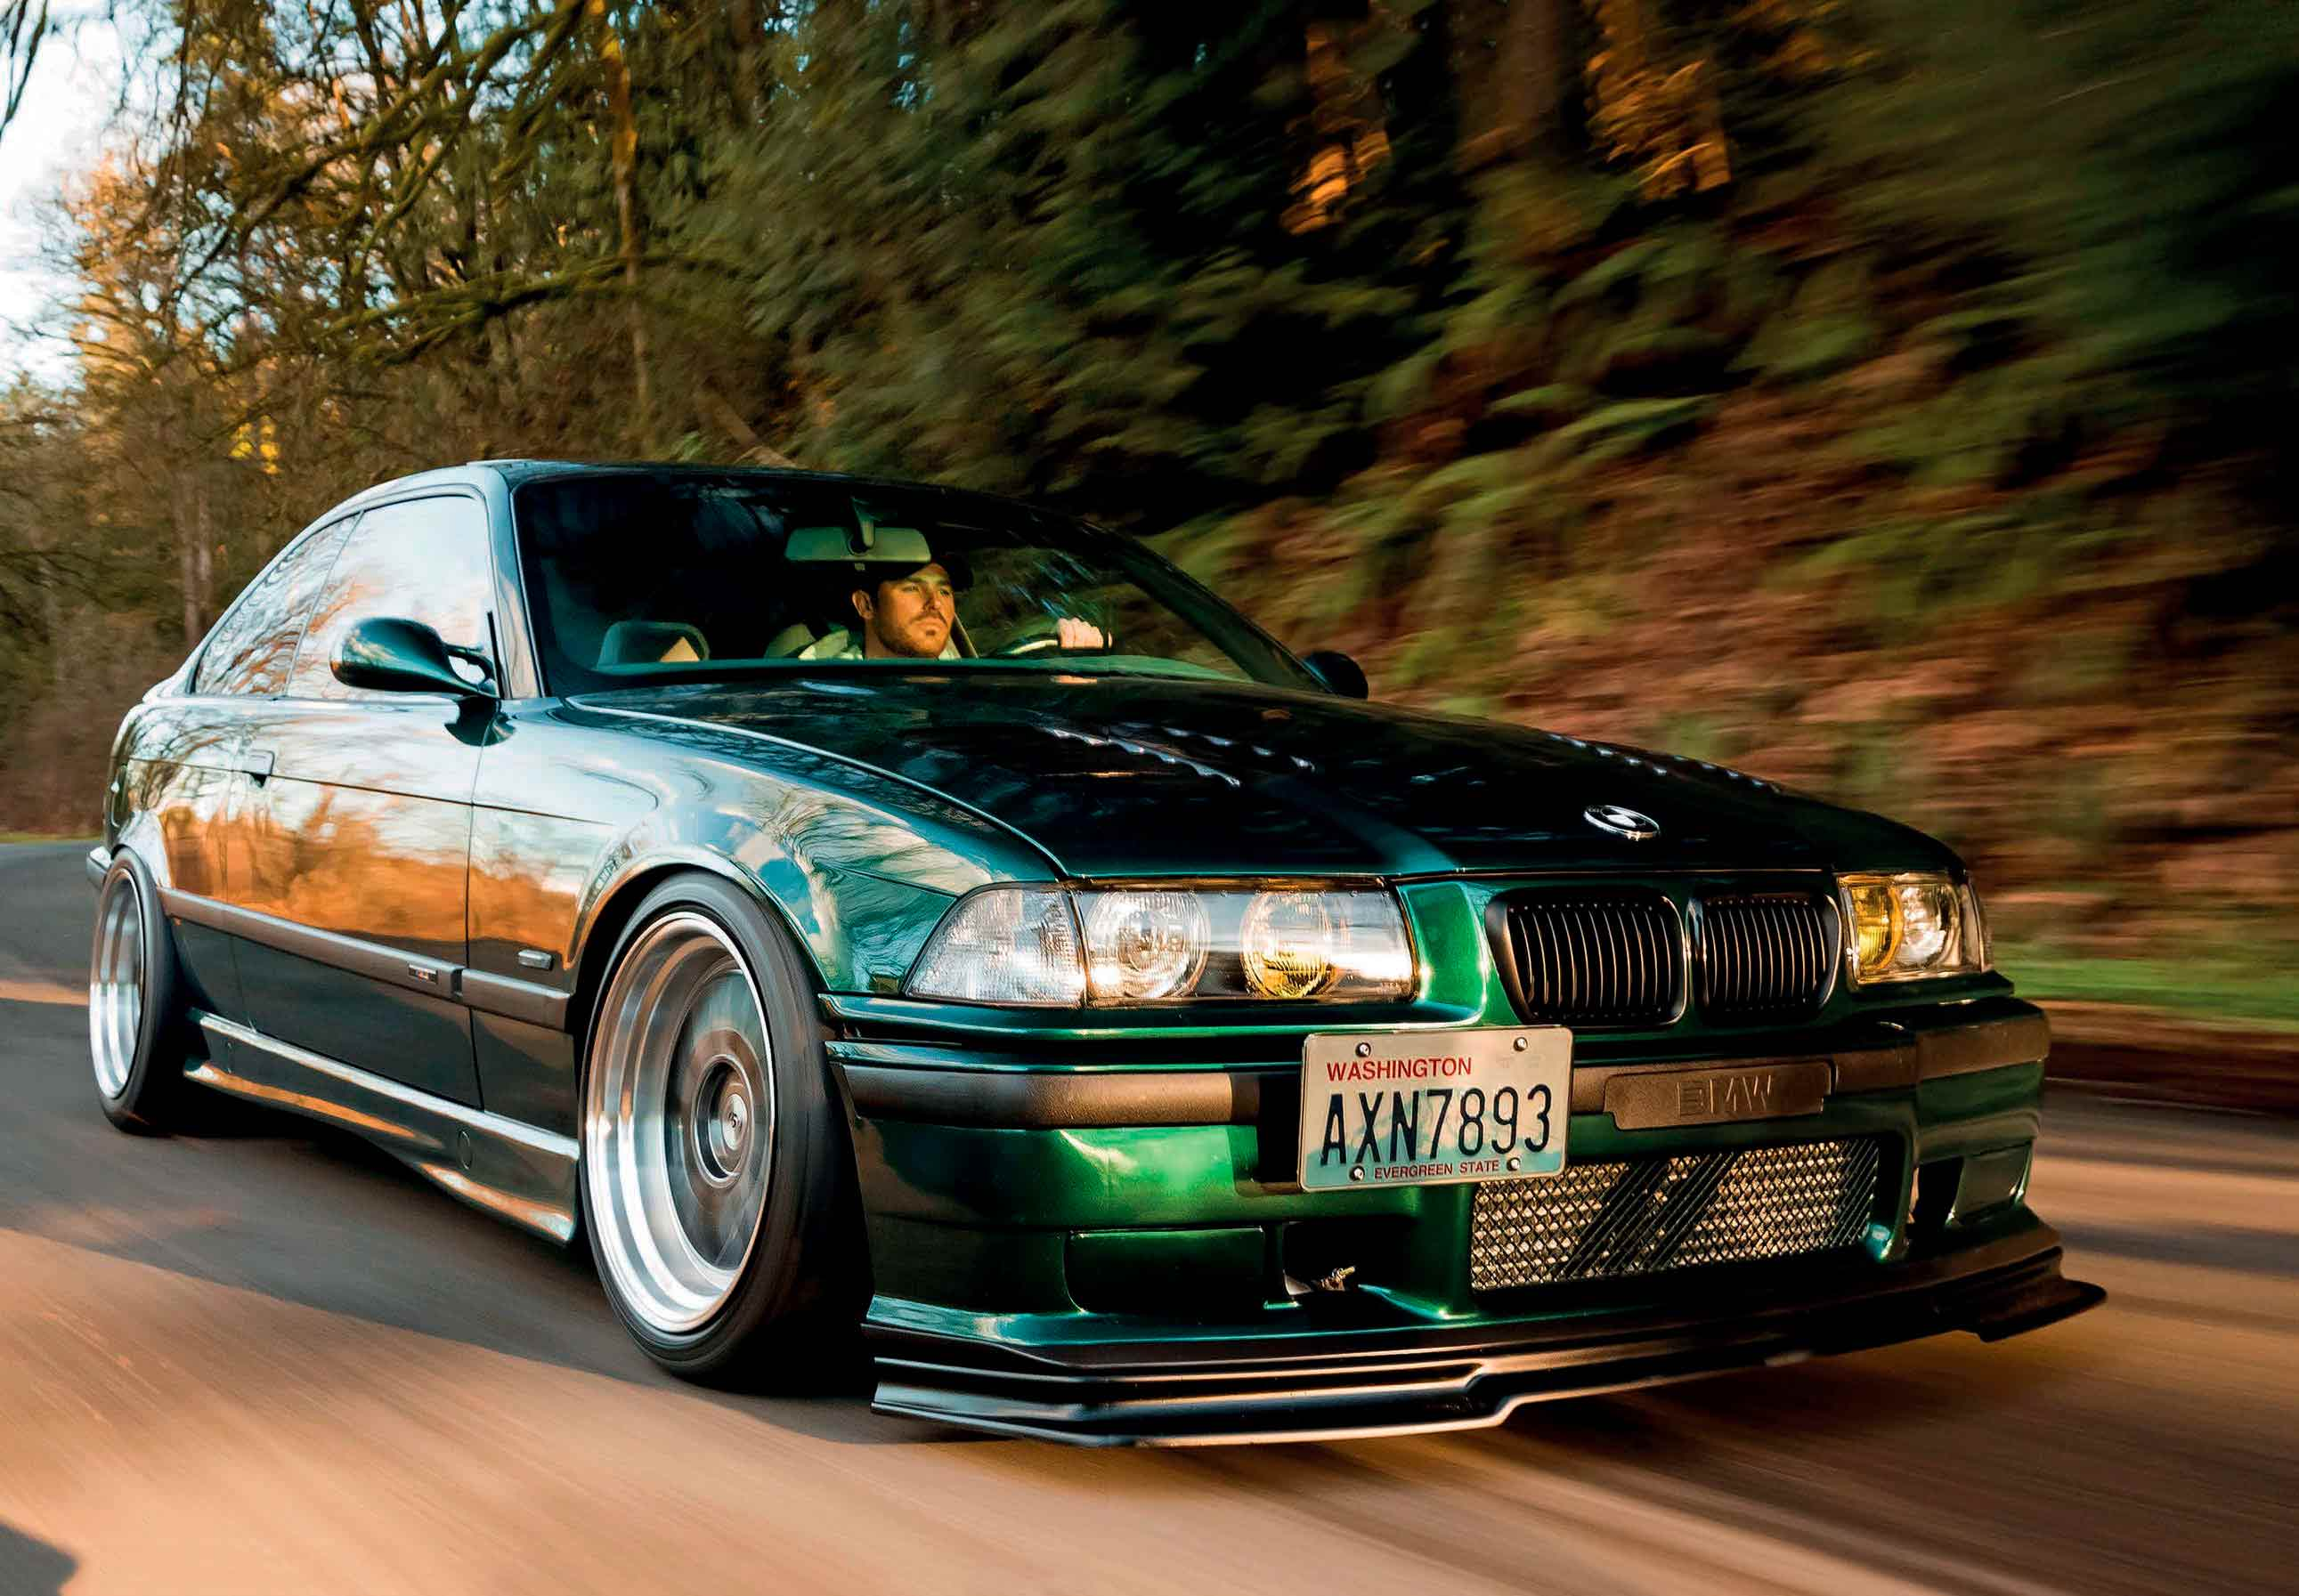 605whp Turbo Bmw M3 Coupe E36 Drive My Blogs Drive